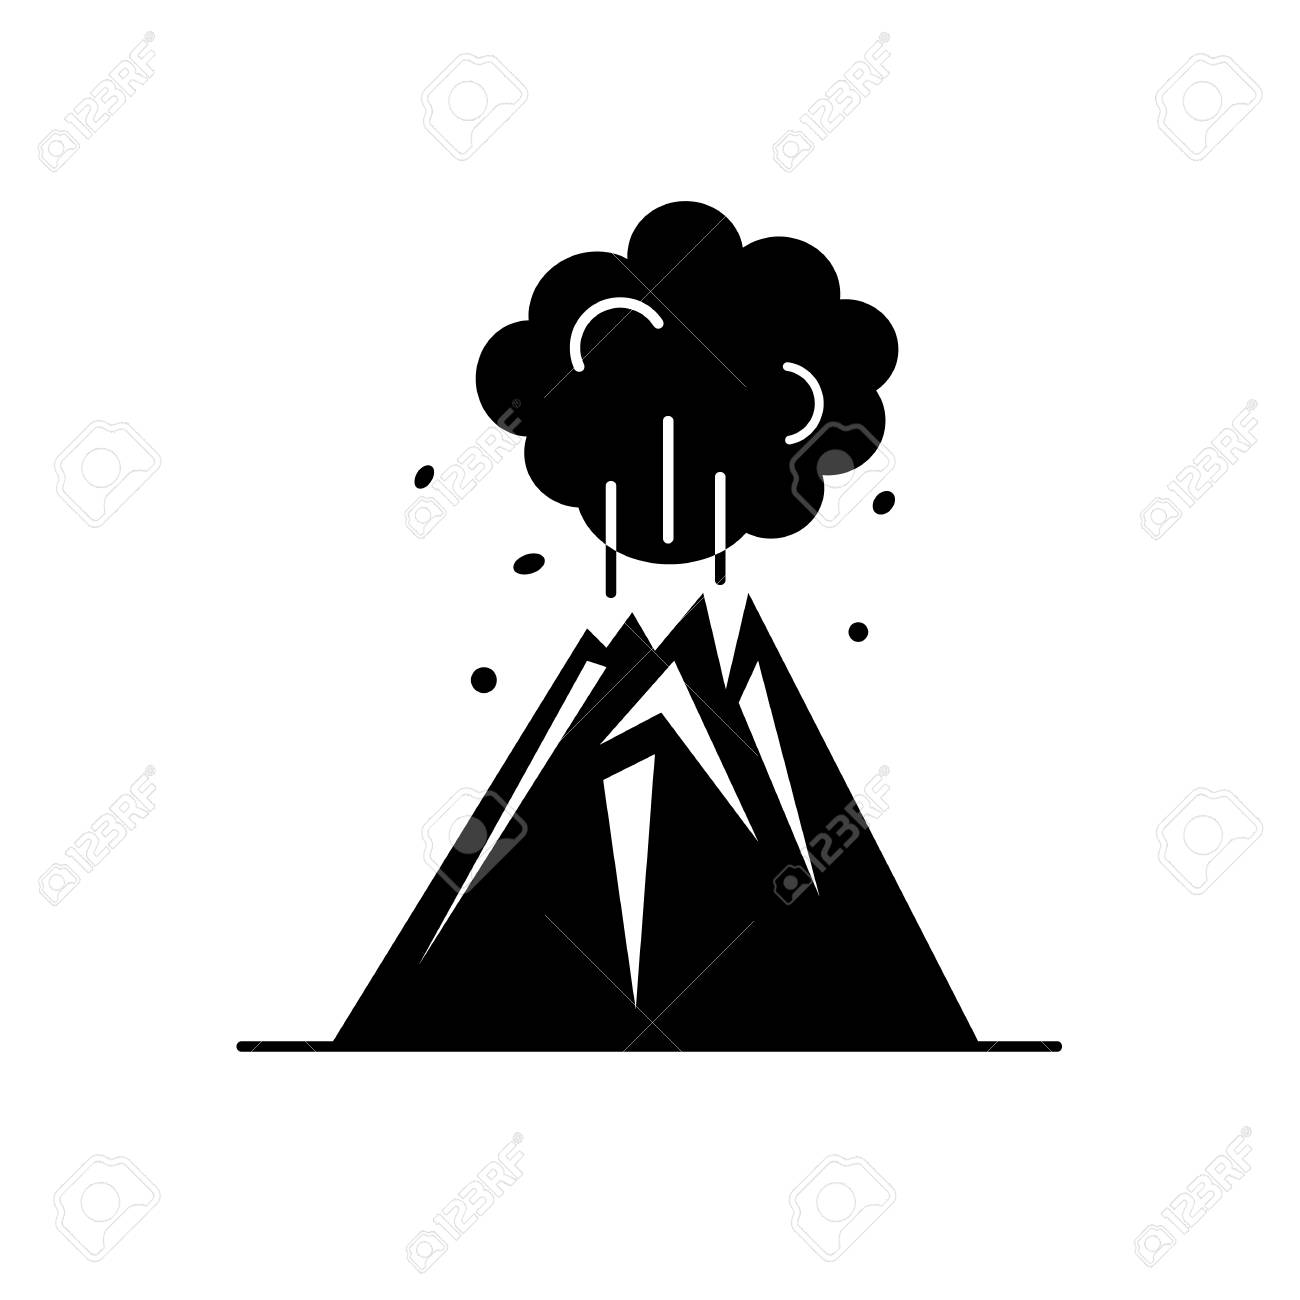 Volcano Eruption Silhouette Icon In Flat Style Mountain Symbol